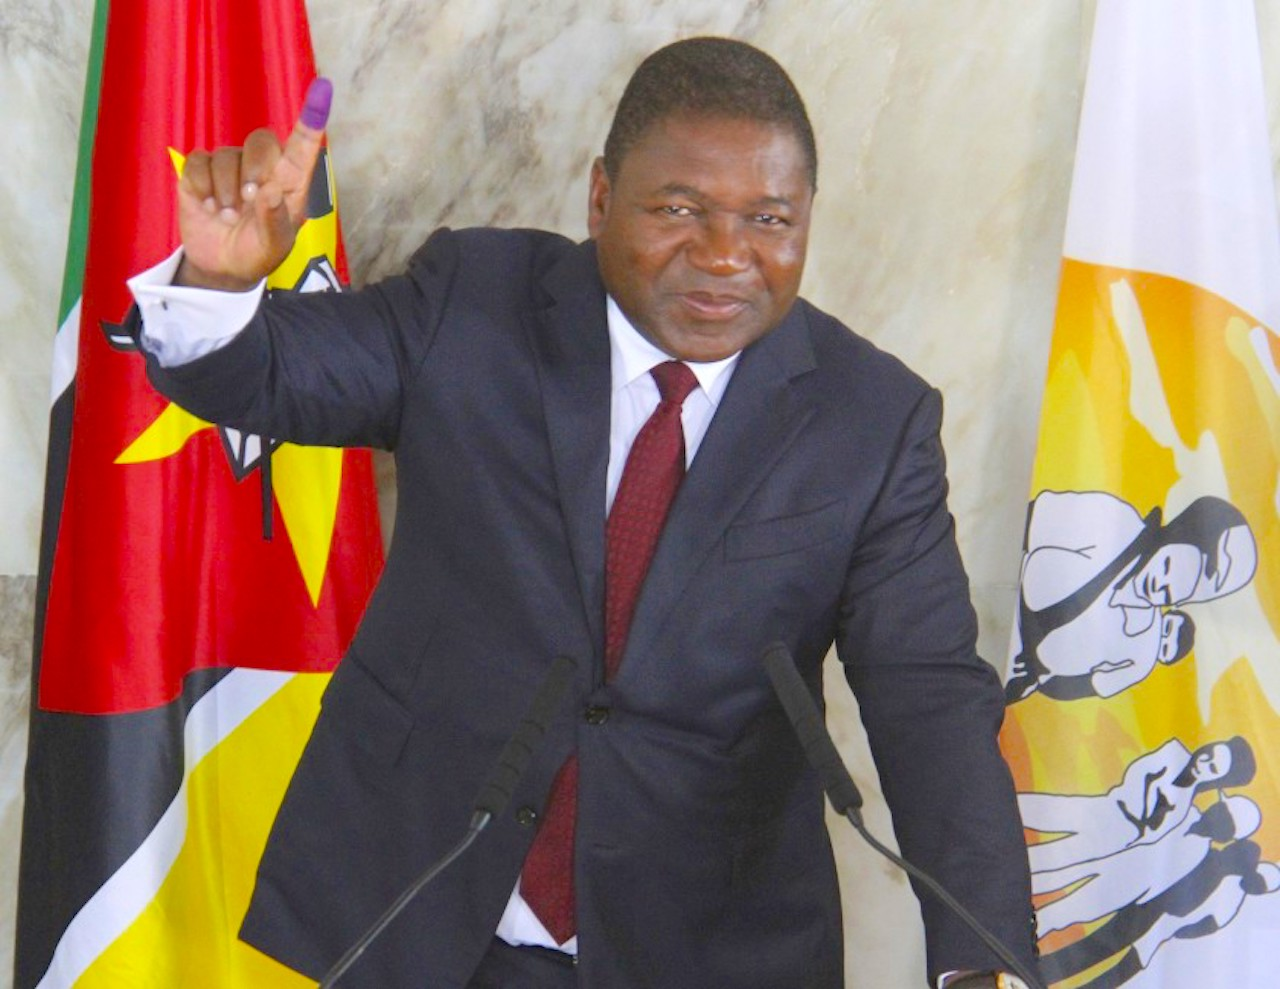 Mozambican President Felipe Nyusi in Maputo, Mozambique, during elections in October 2019. (Image by Ferhat Momade/Associated Press)